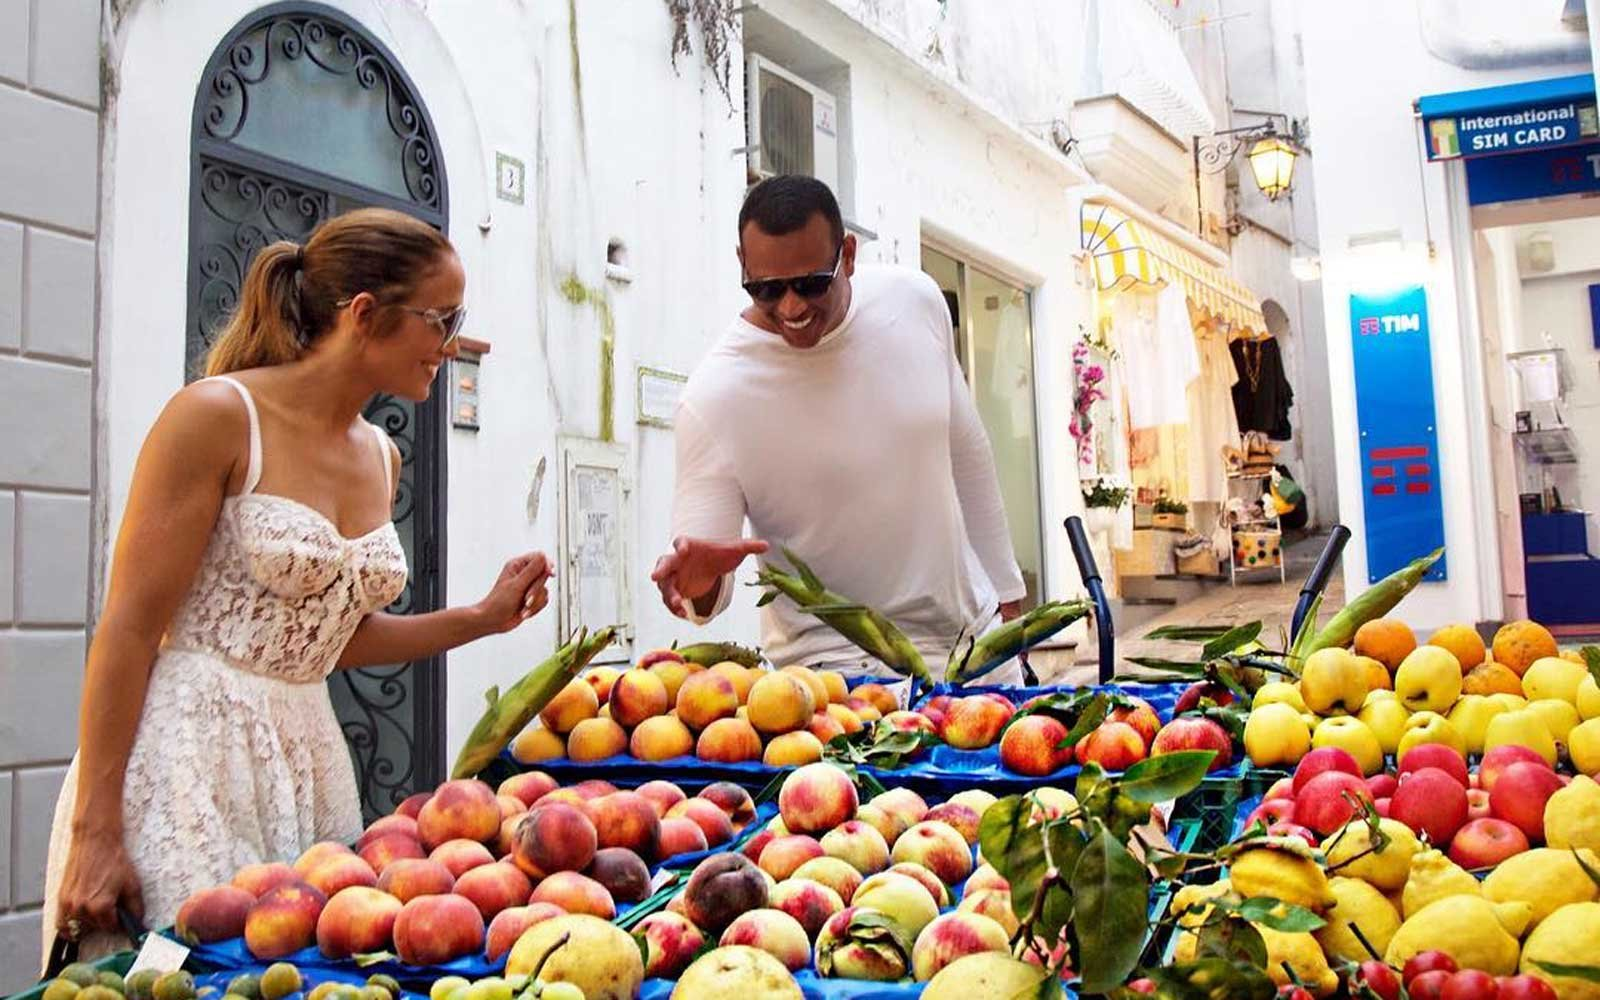 Alex Rodriguez and Jennifer Lopez go shopping for fruit in Italy